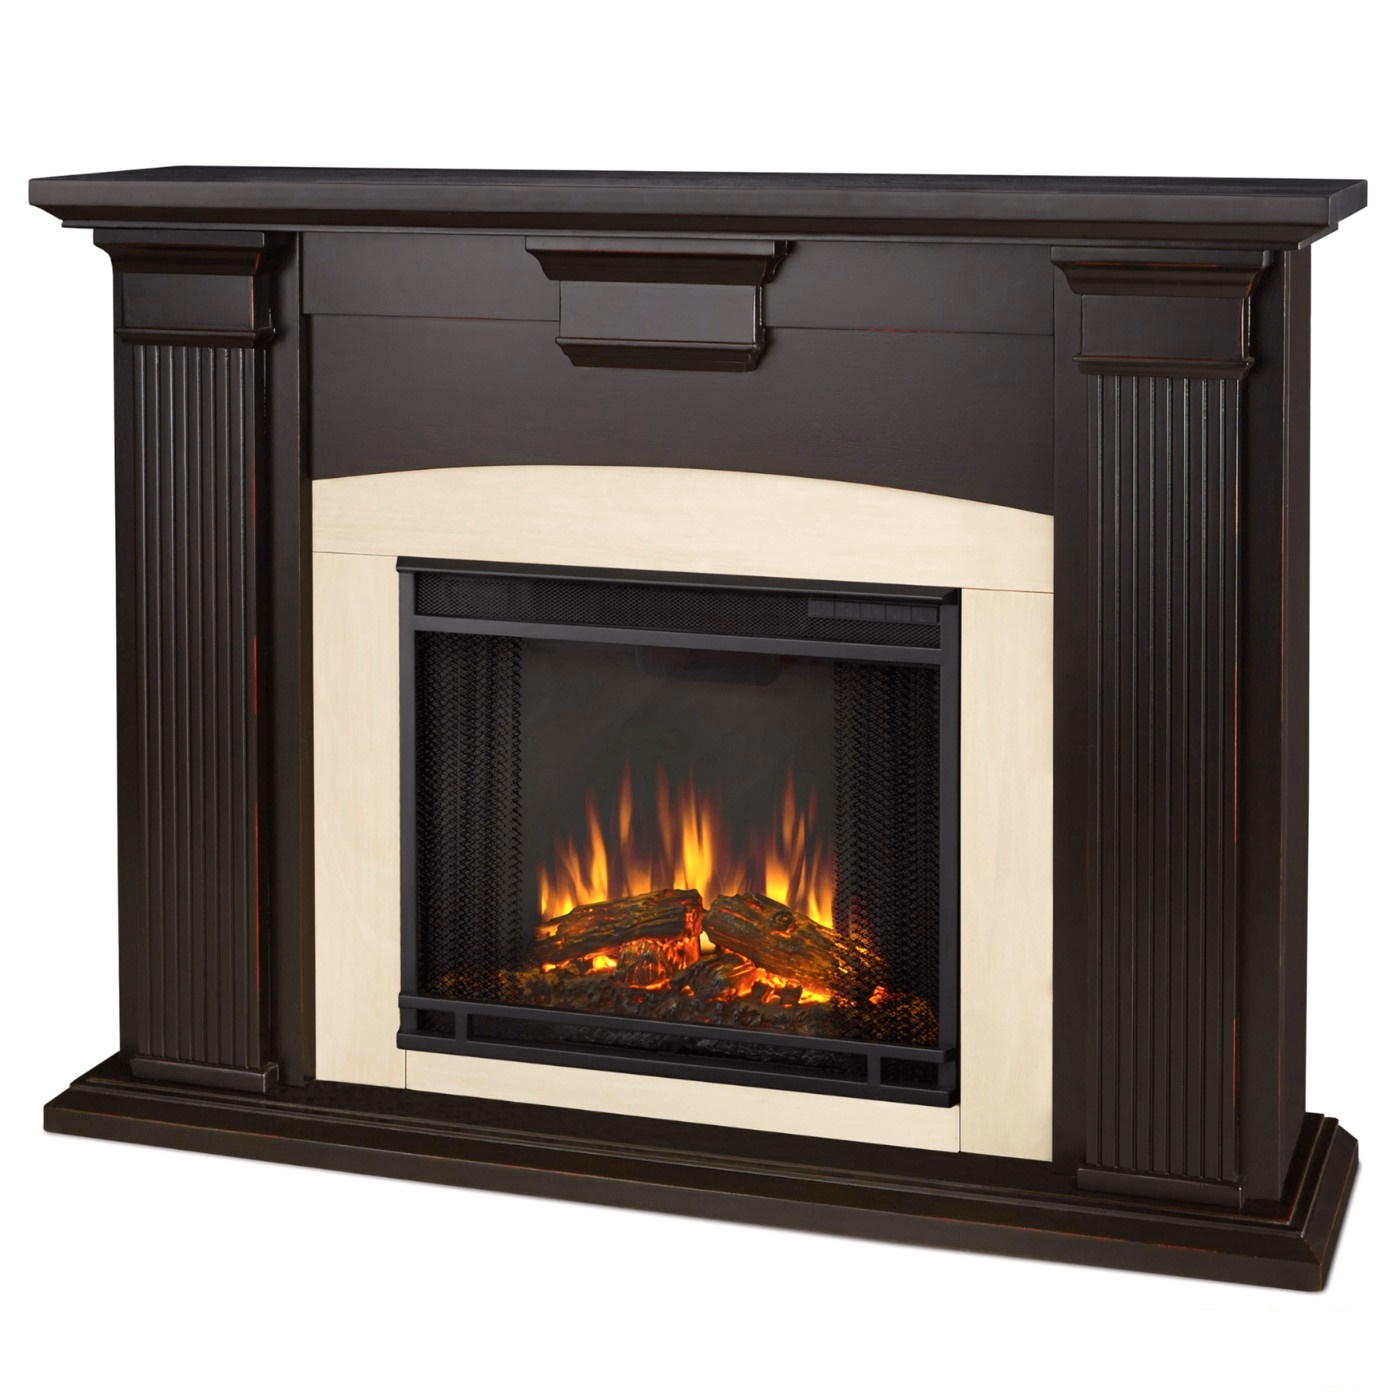 Adelaide Electric Led Heater Fireplace In Antique Black